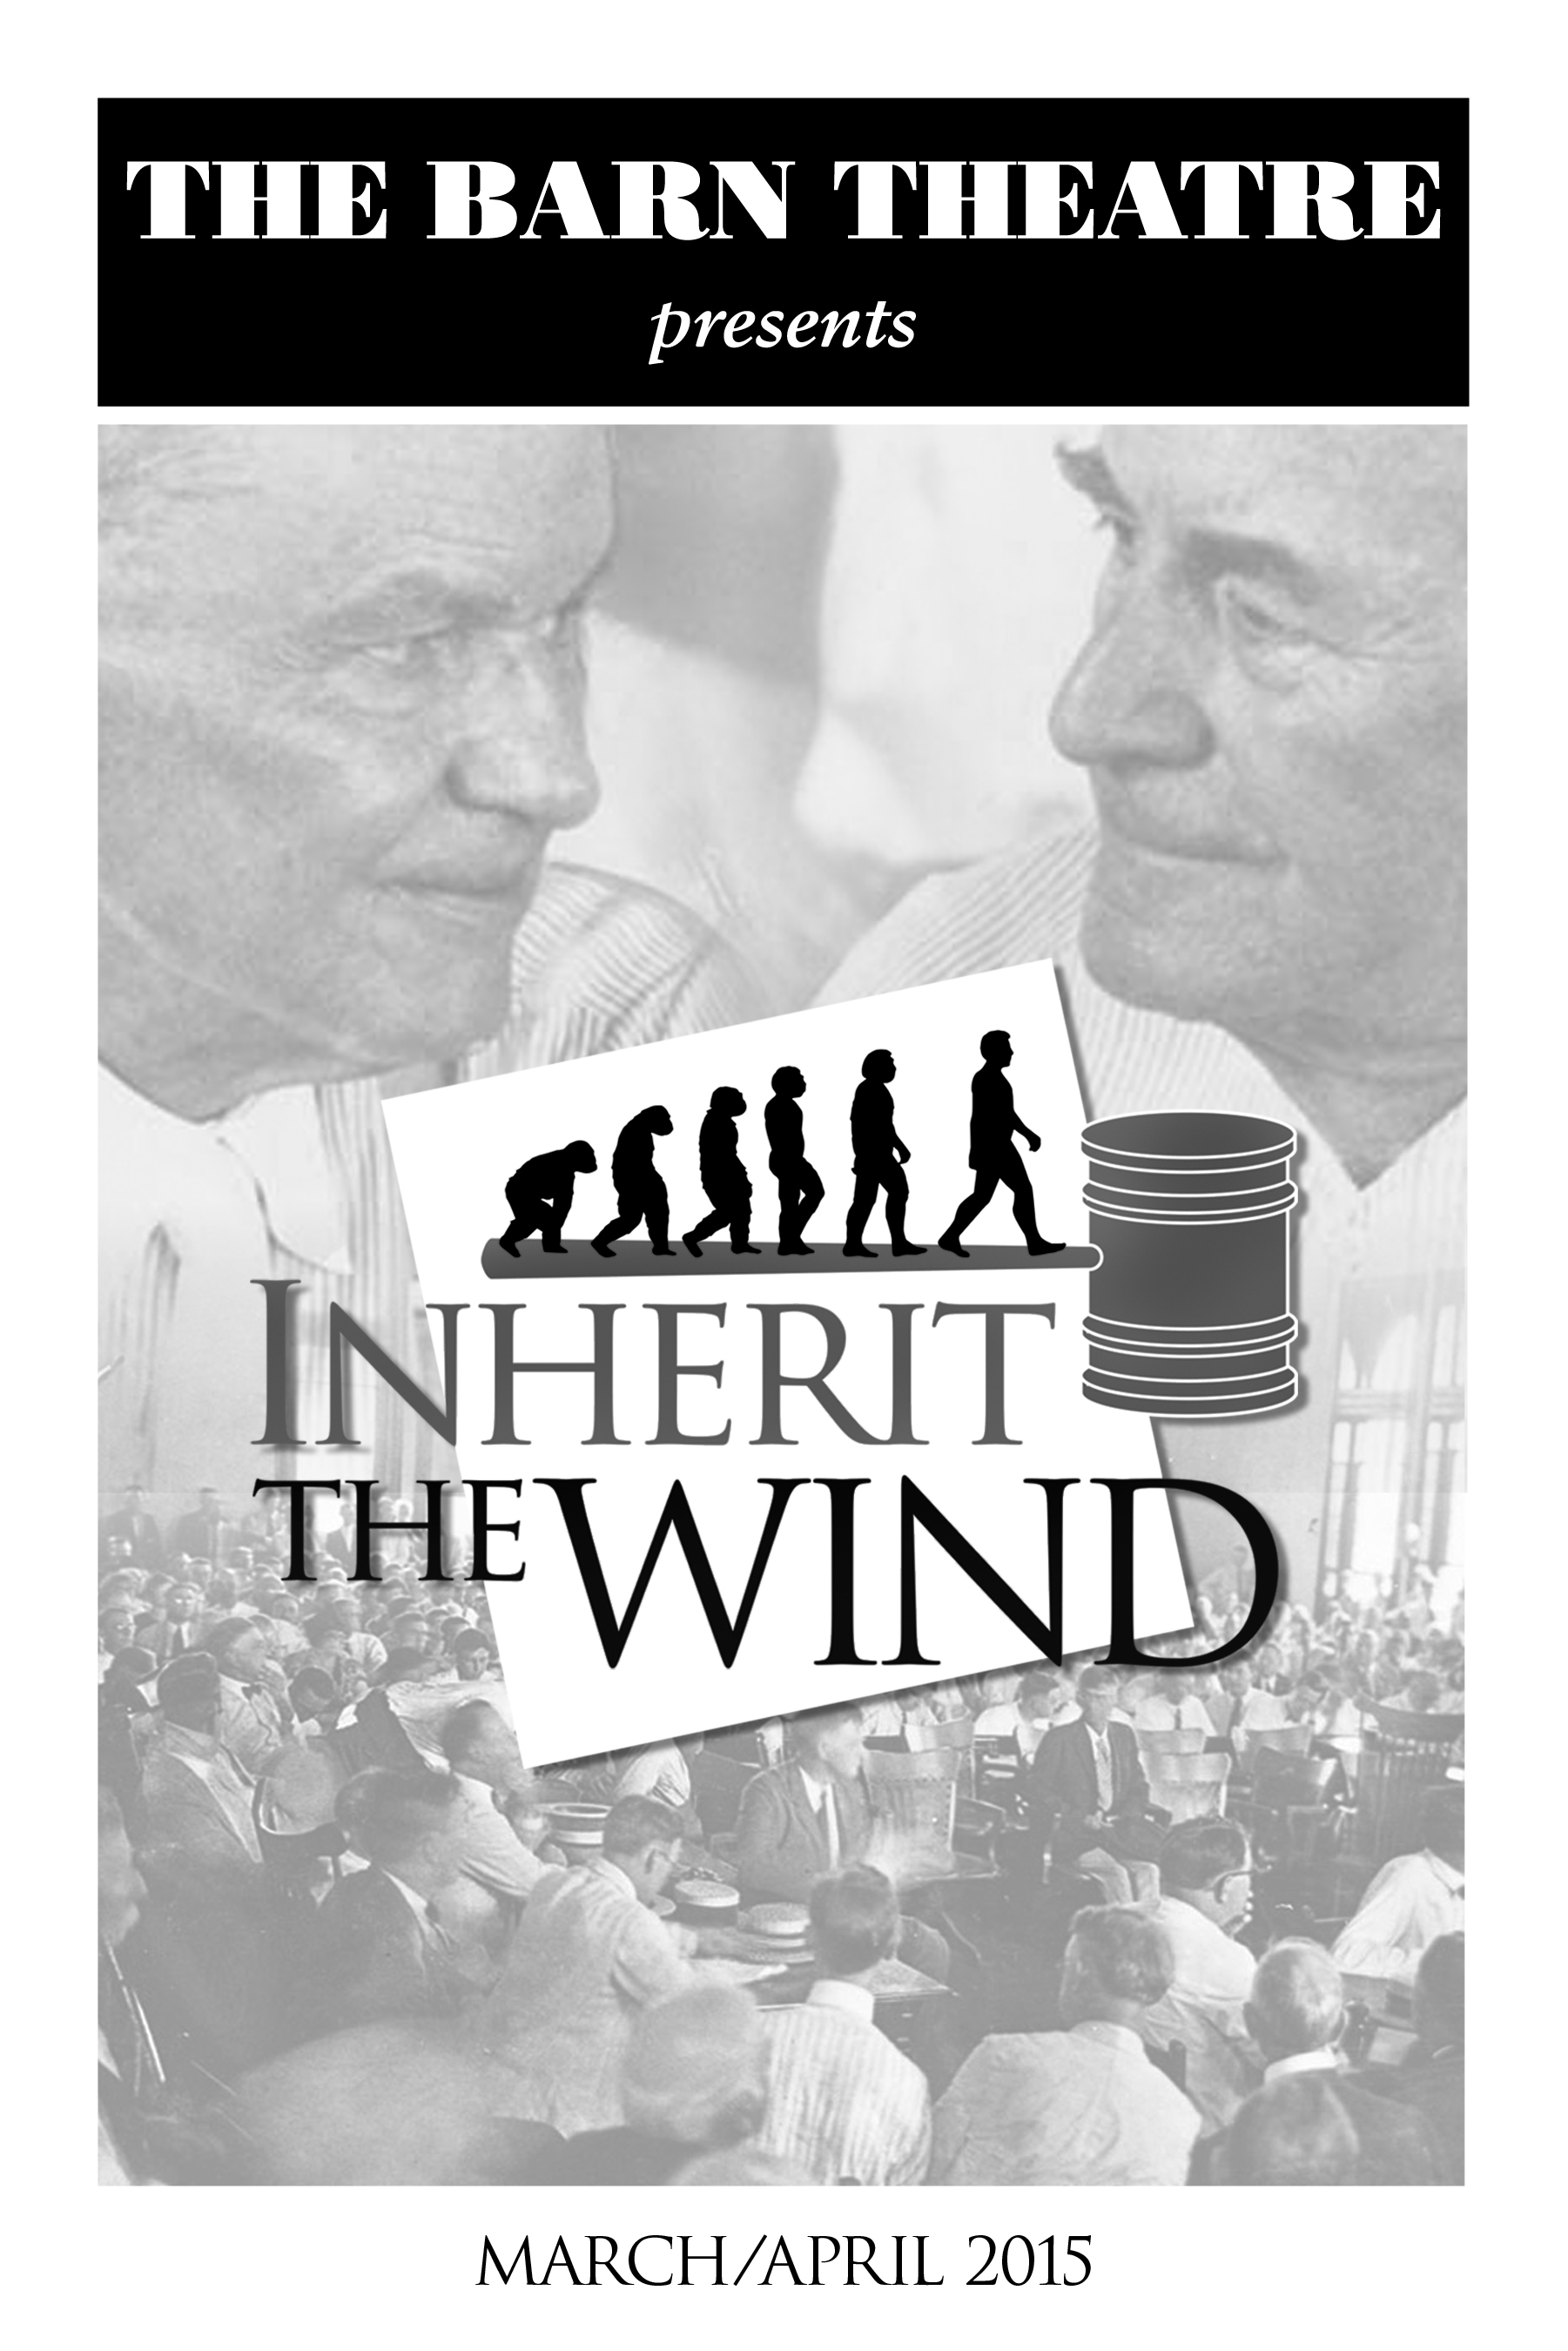 Inherit The Wind Our Season The Barn Theatre